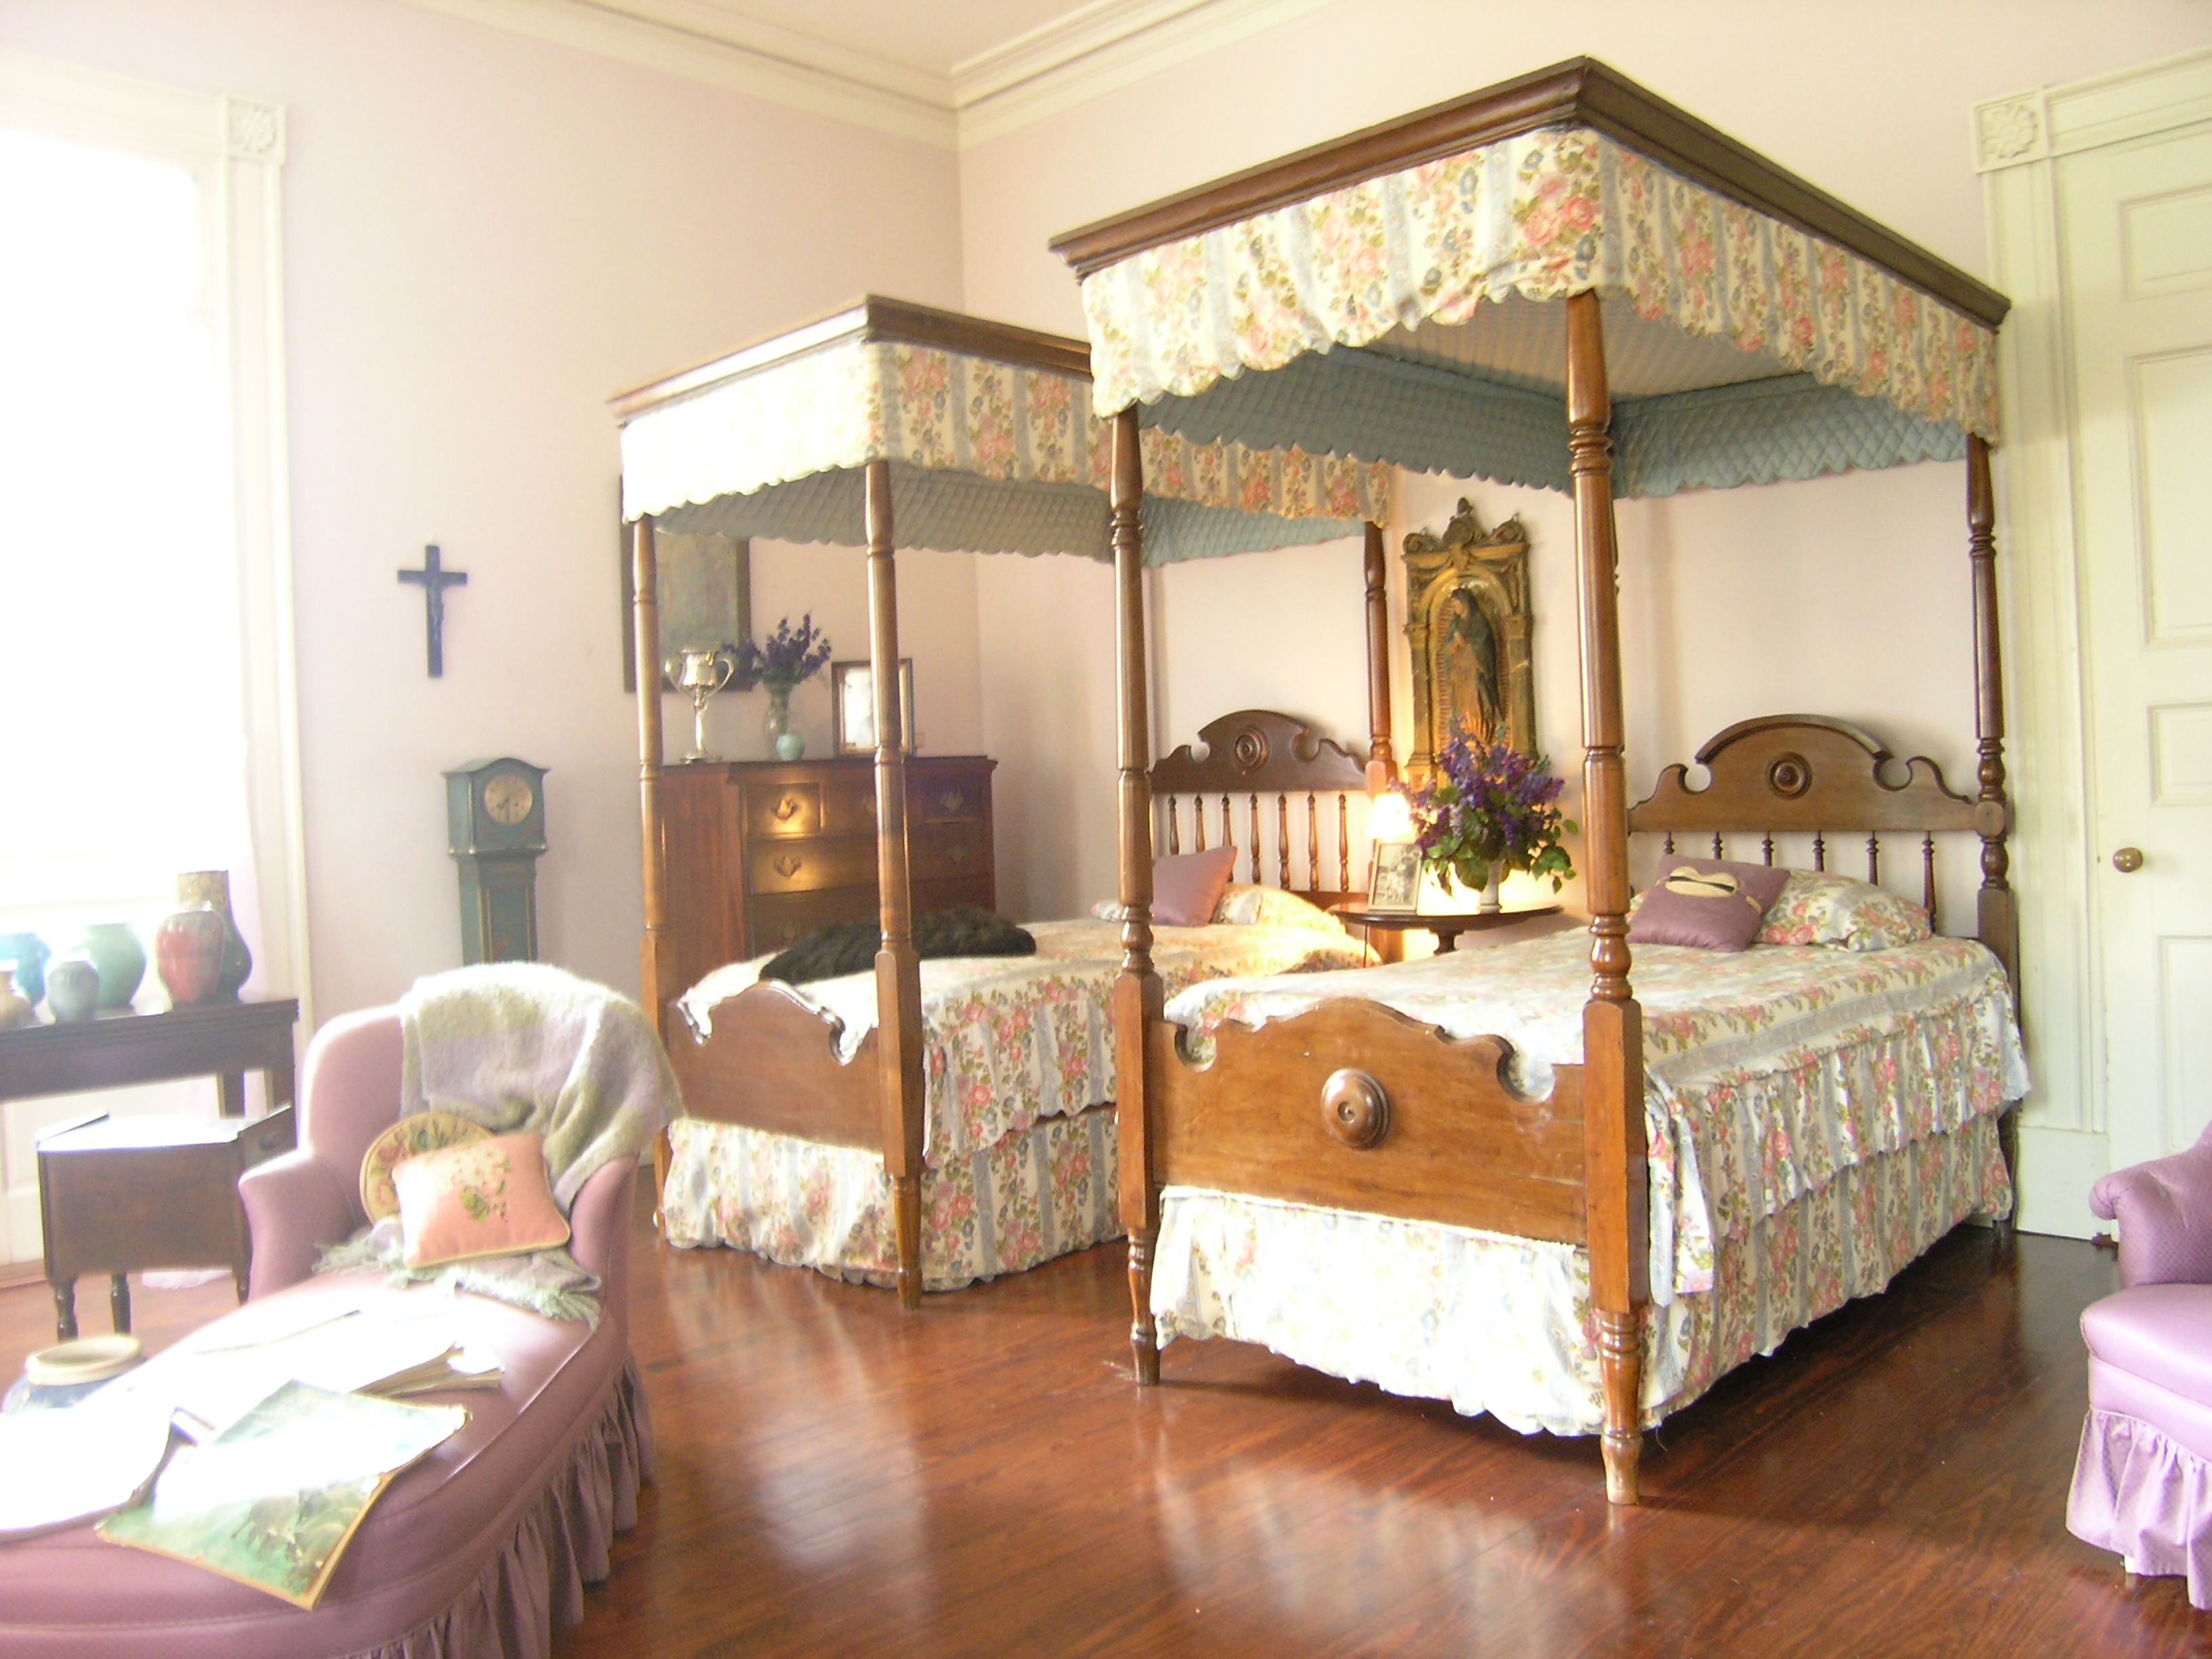 Oak Alley Plantation (Interior Bedroom 1) | Flickr - Photo ...